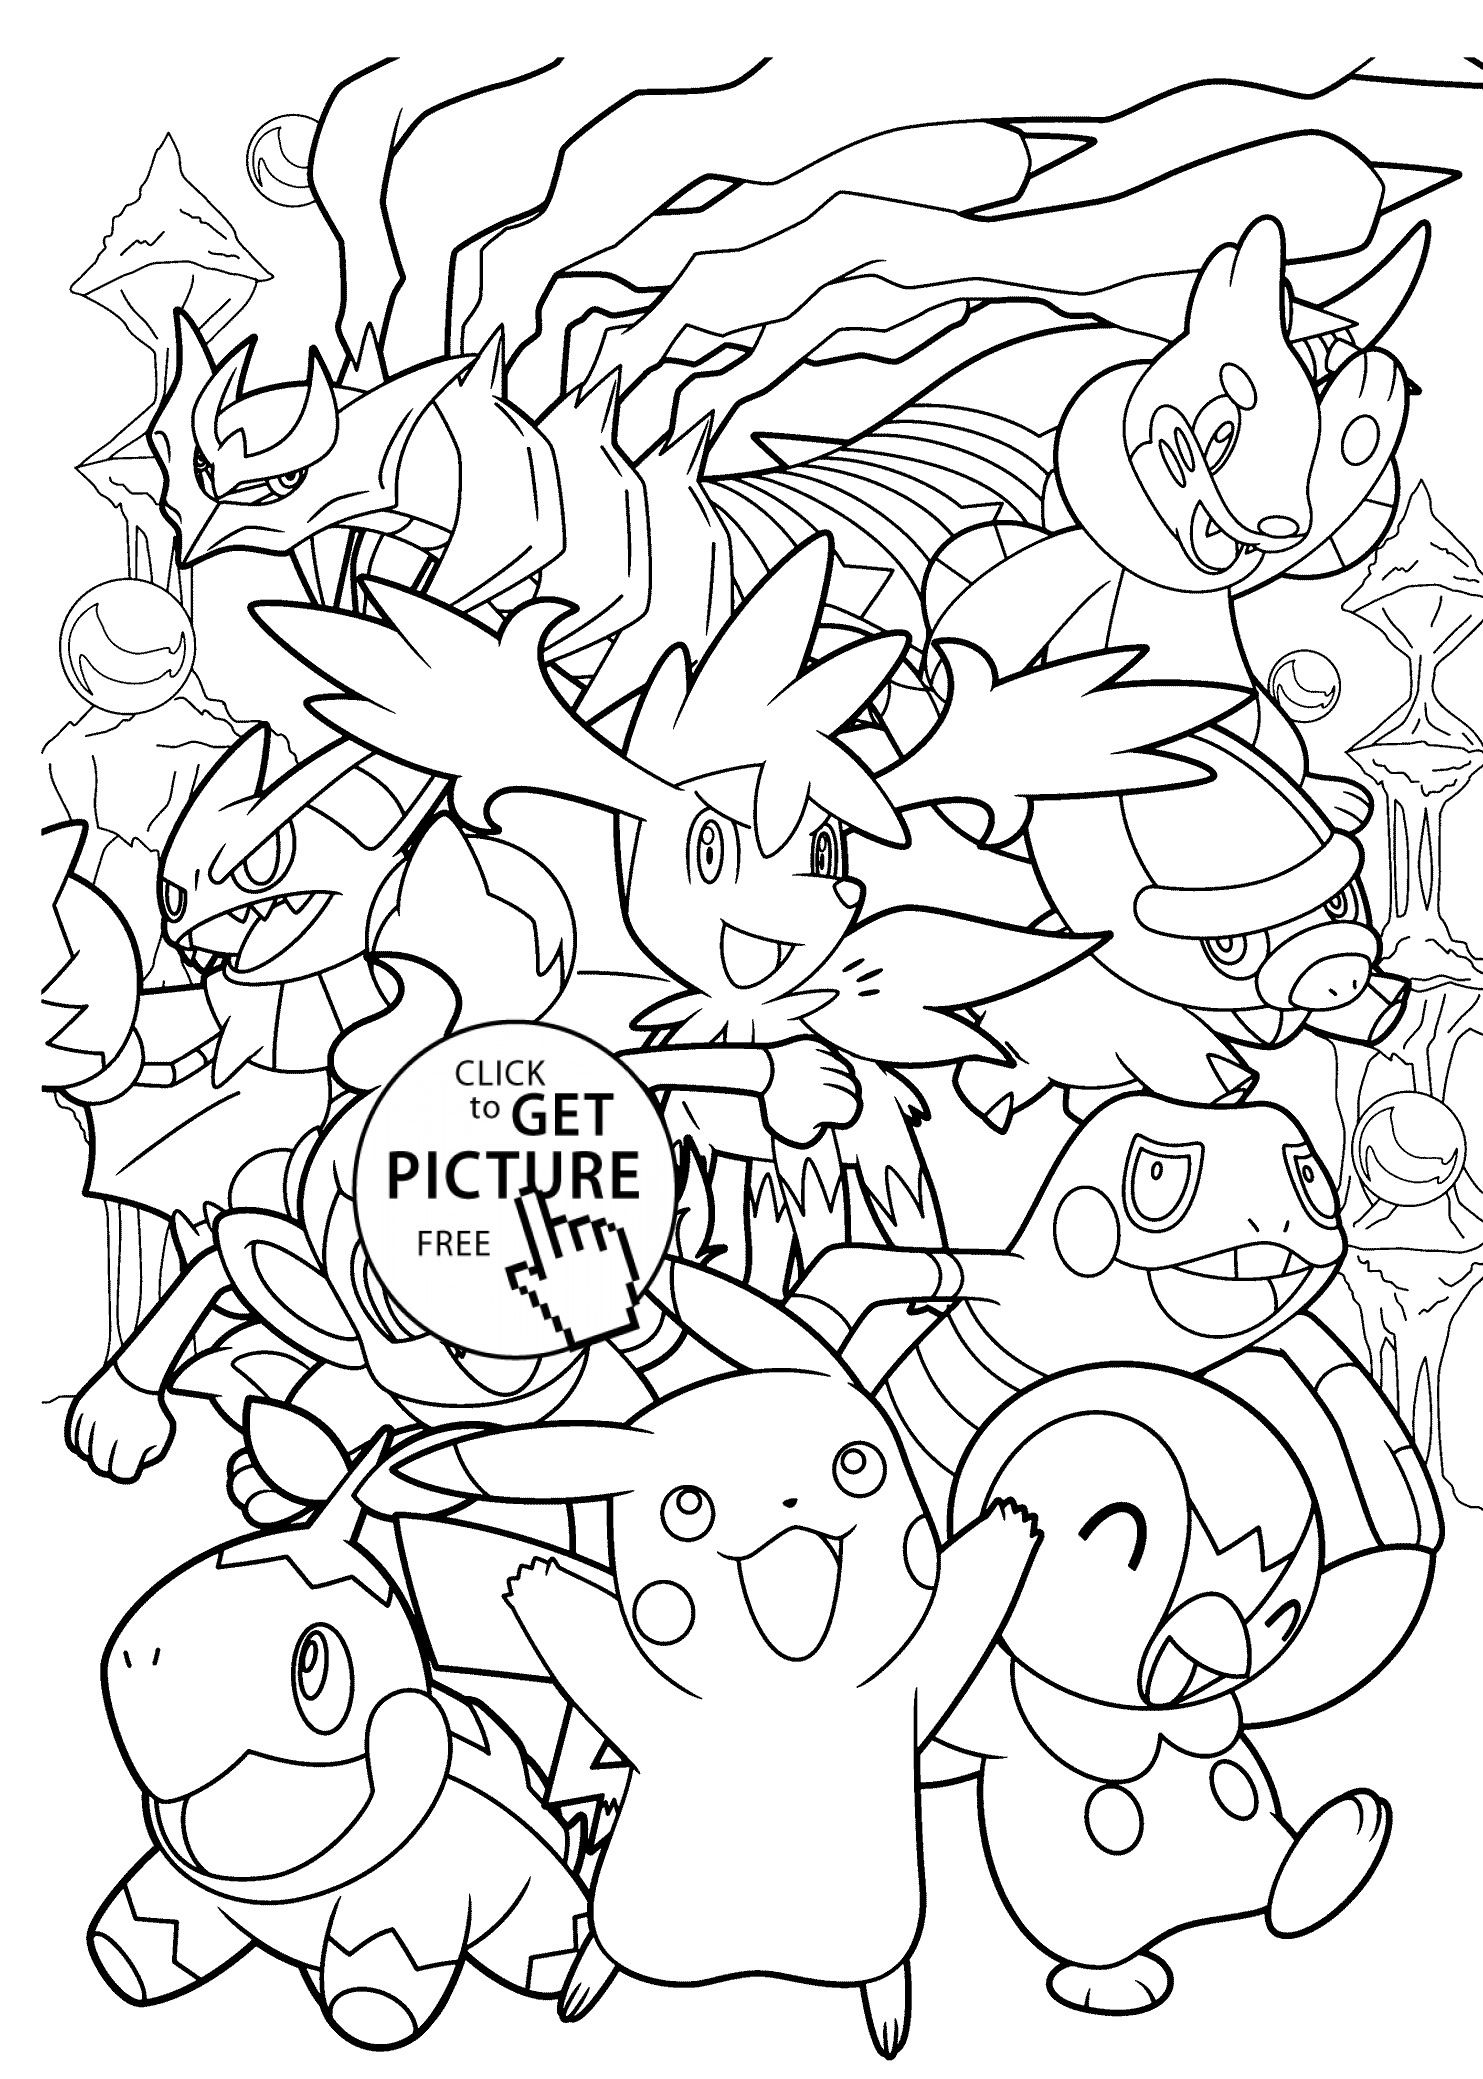 Pokemon Hard Coloring Pages Through The Thousands Of Photos On The Internet About Pokemon Hard Pokemon Coloring Sheets Pikachu Coloring Page Pokemon Coloring